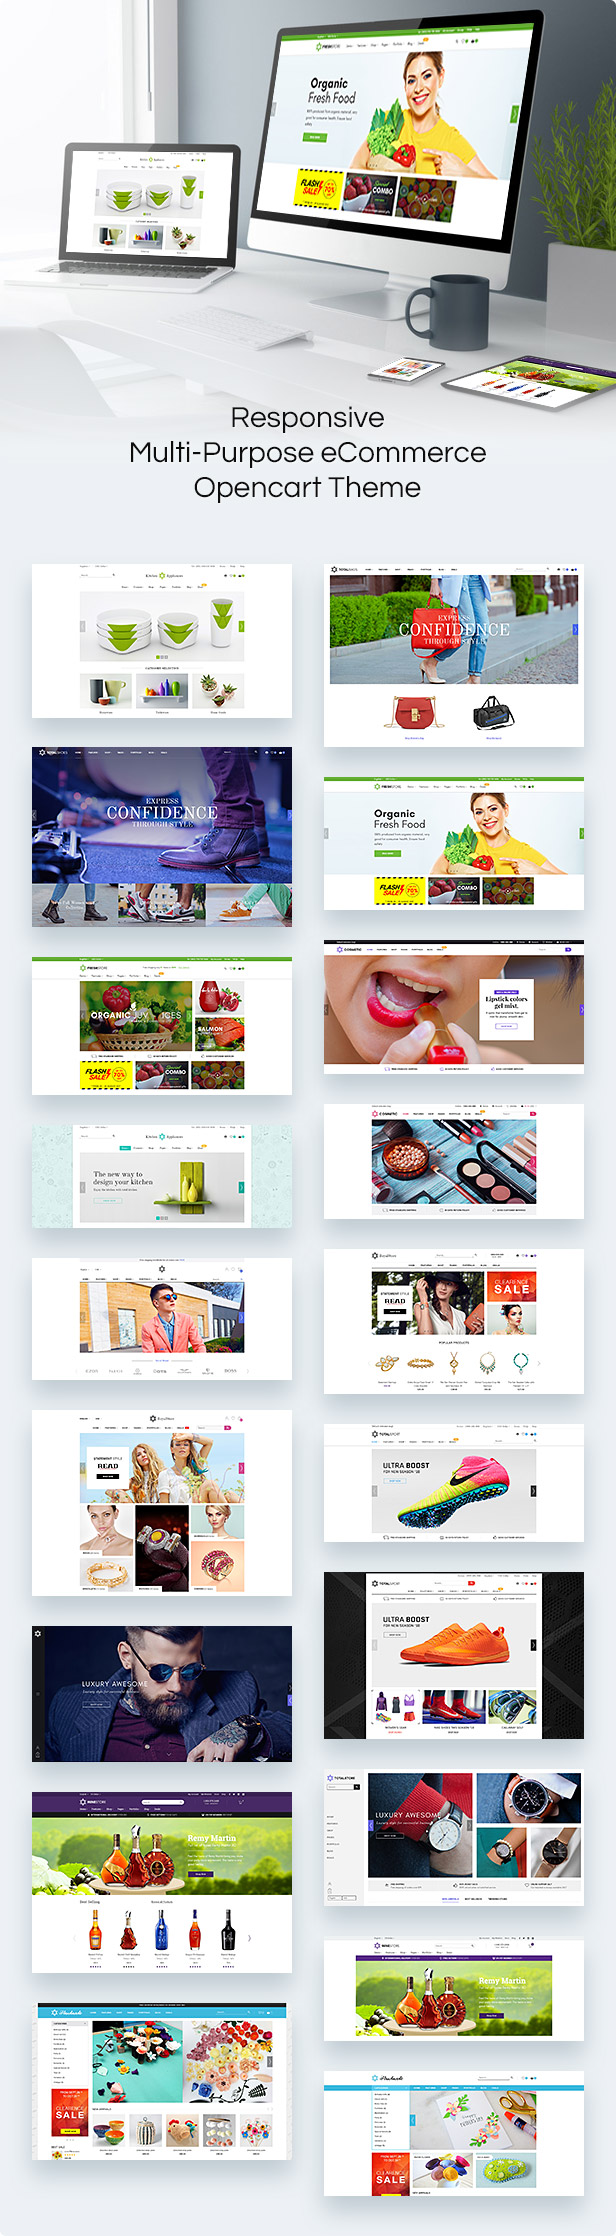 TotalStore OpenCart theme variations